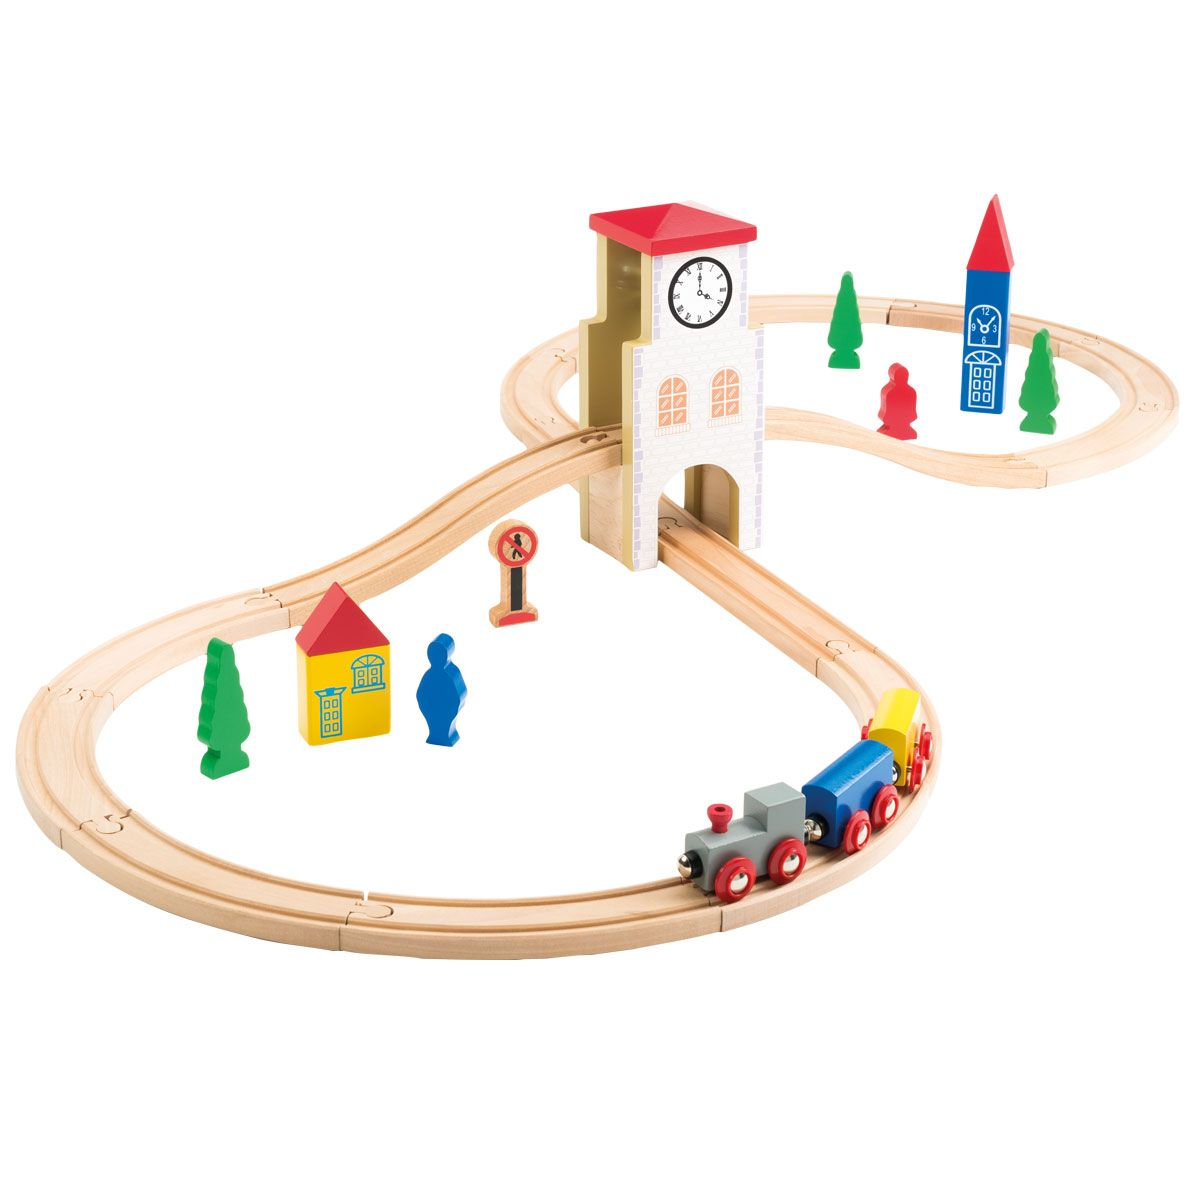 circuit de train en bois 31 pi ces oxybul pour enfant de 3 ans 8 ans oxybul veil et jeux. Black Bedroom Furniture Sets. Home Design Ideas